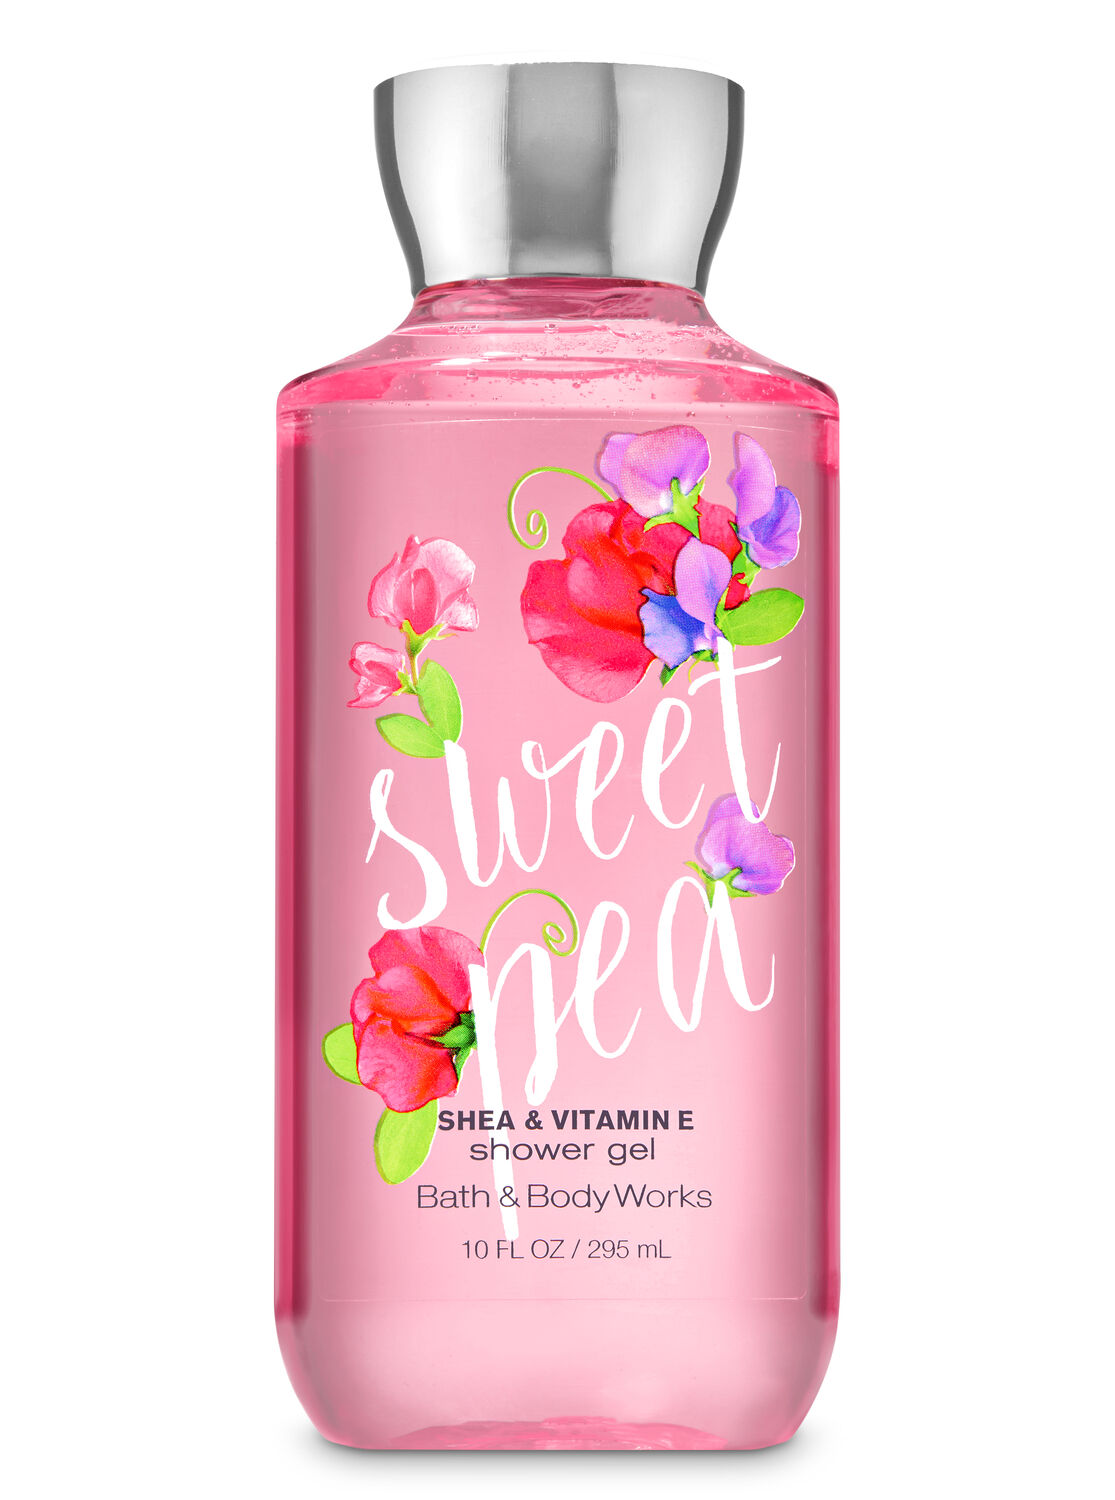 fragrant shower gel body wash bath body works signature collection sweet pea shower gel bath and body works